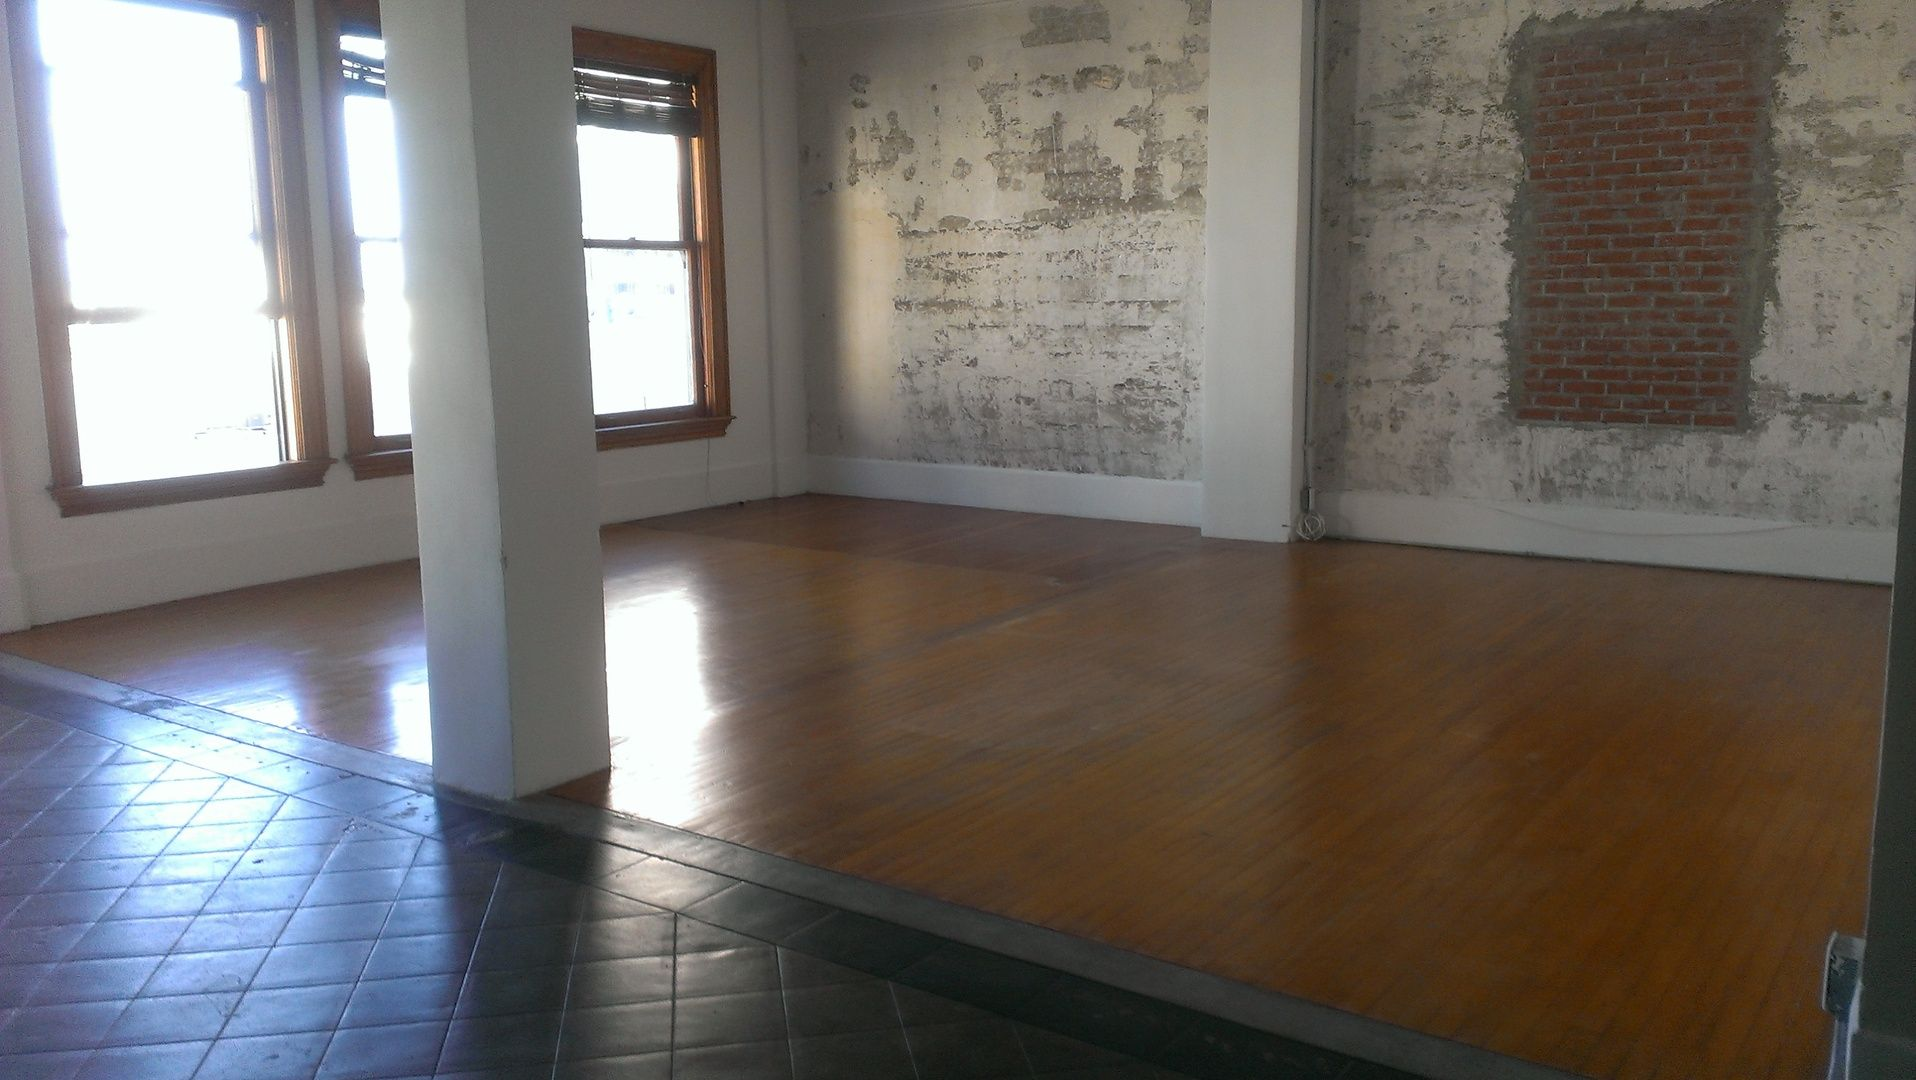 This amazing industrial loft is located in the historic scripps